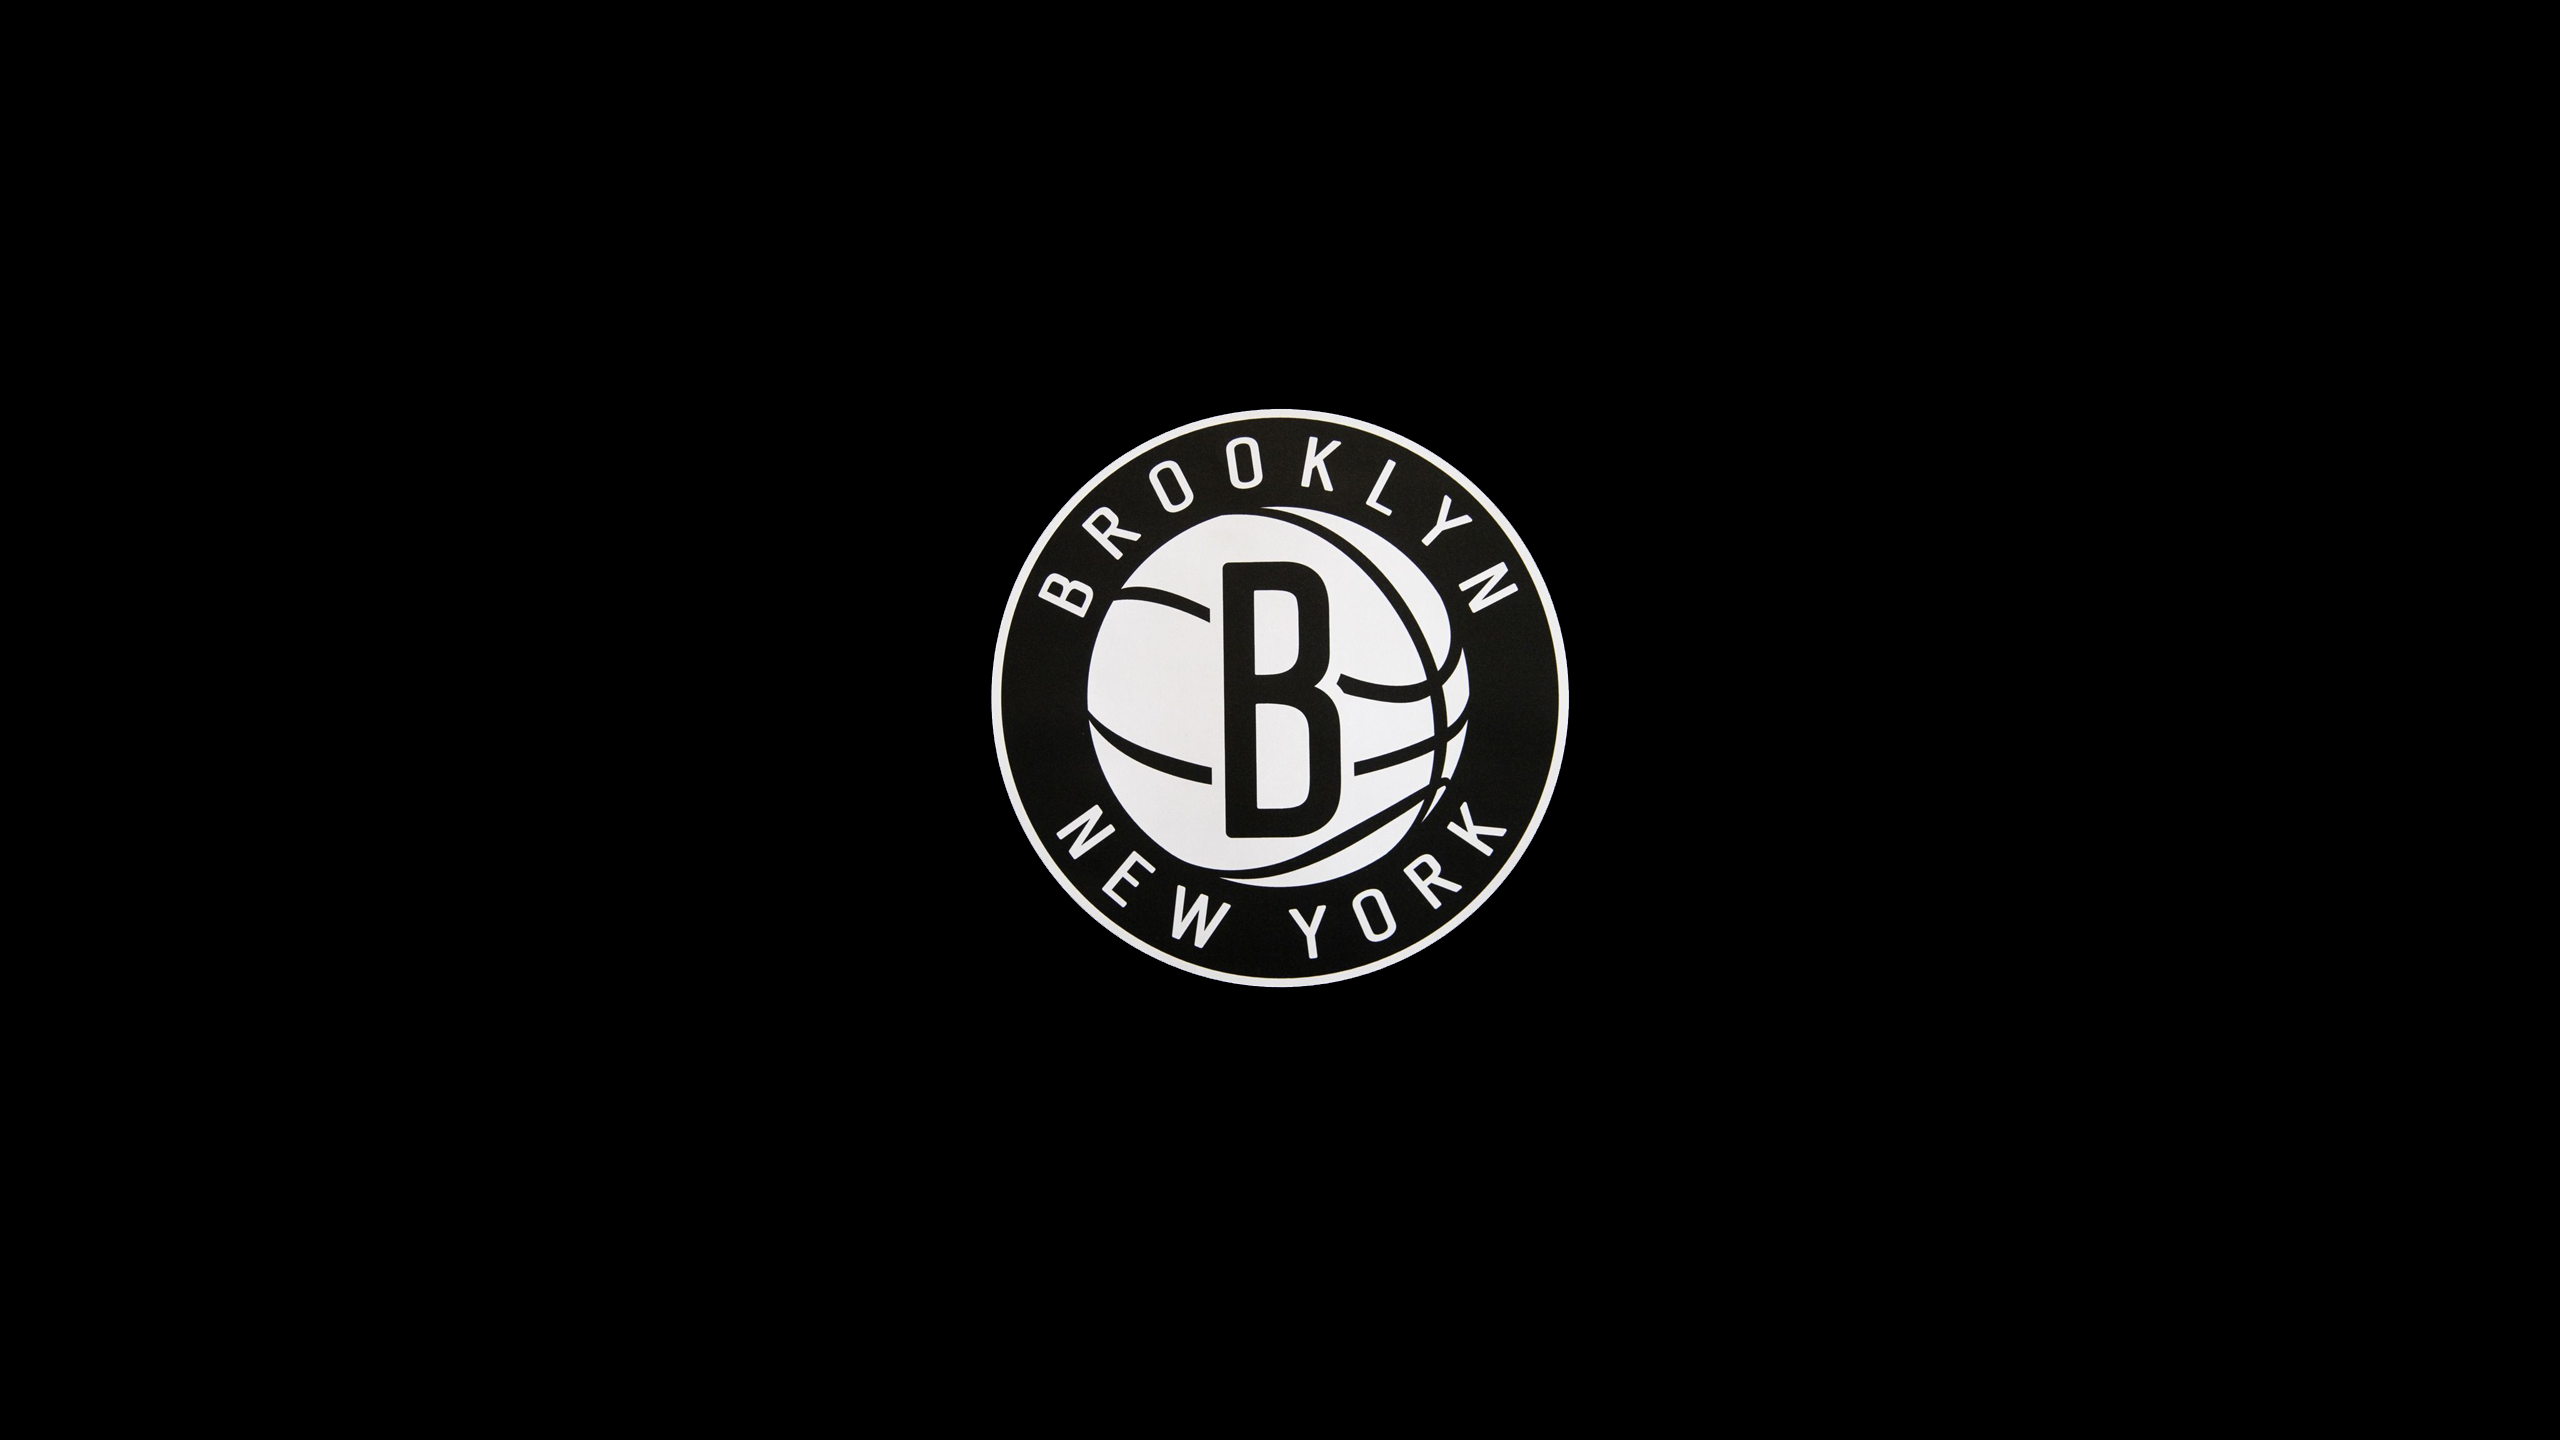 April 15, 2015: Nets, 2560x1440 px